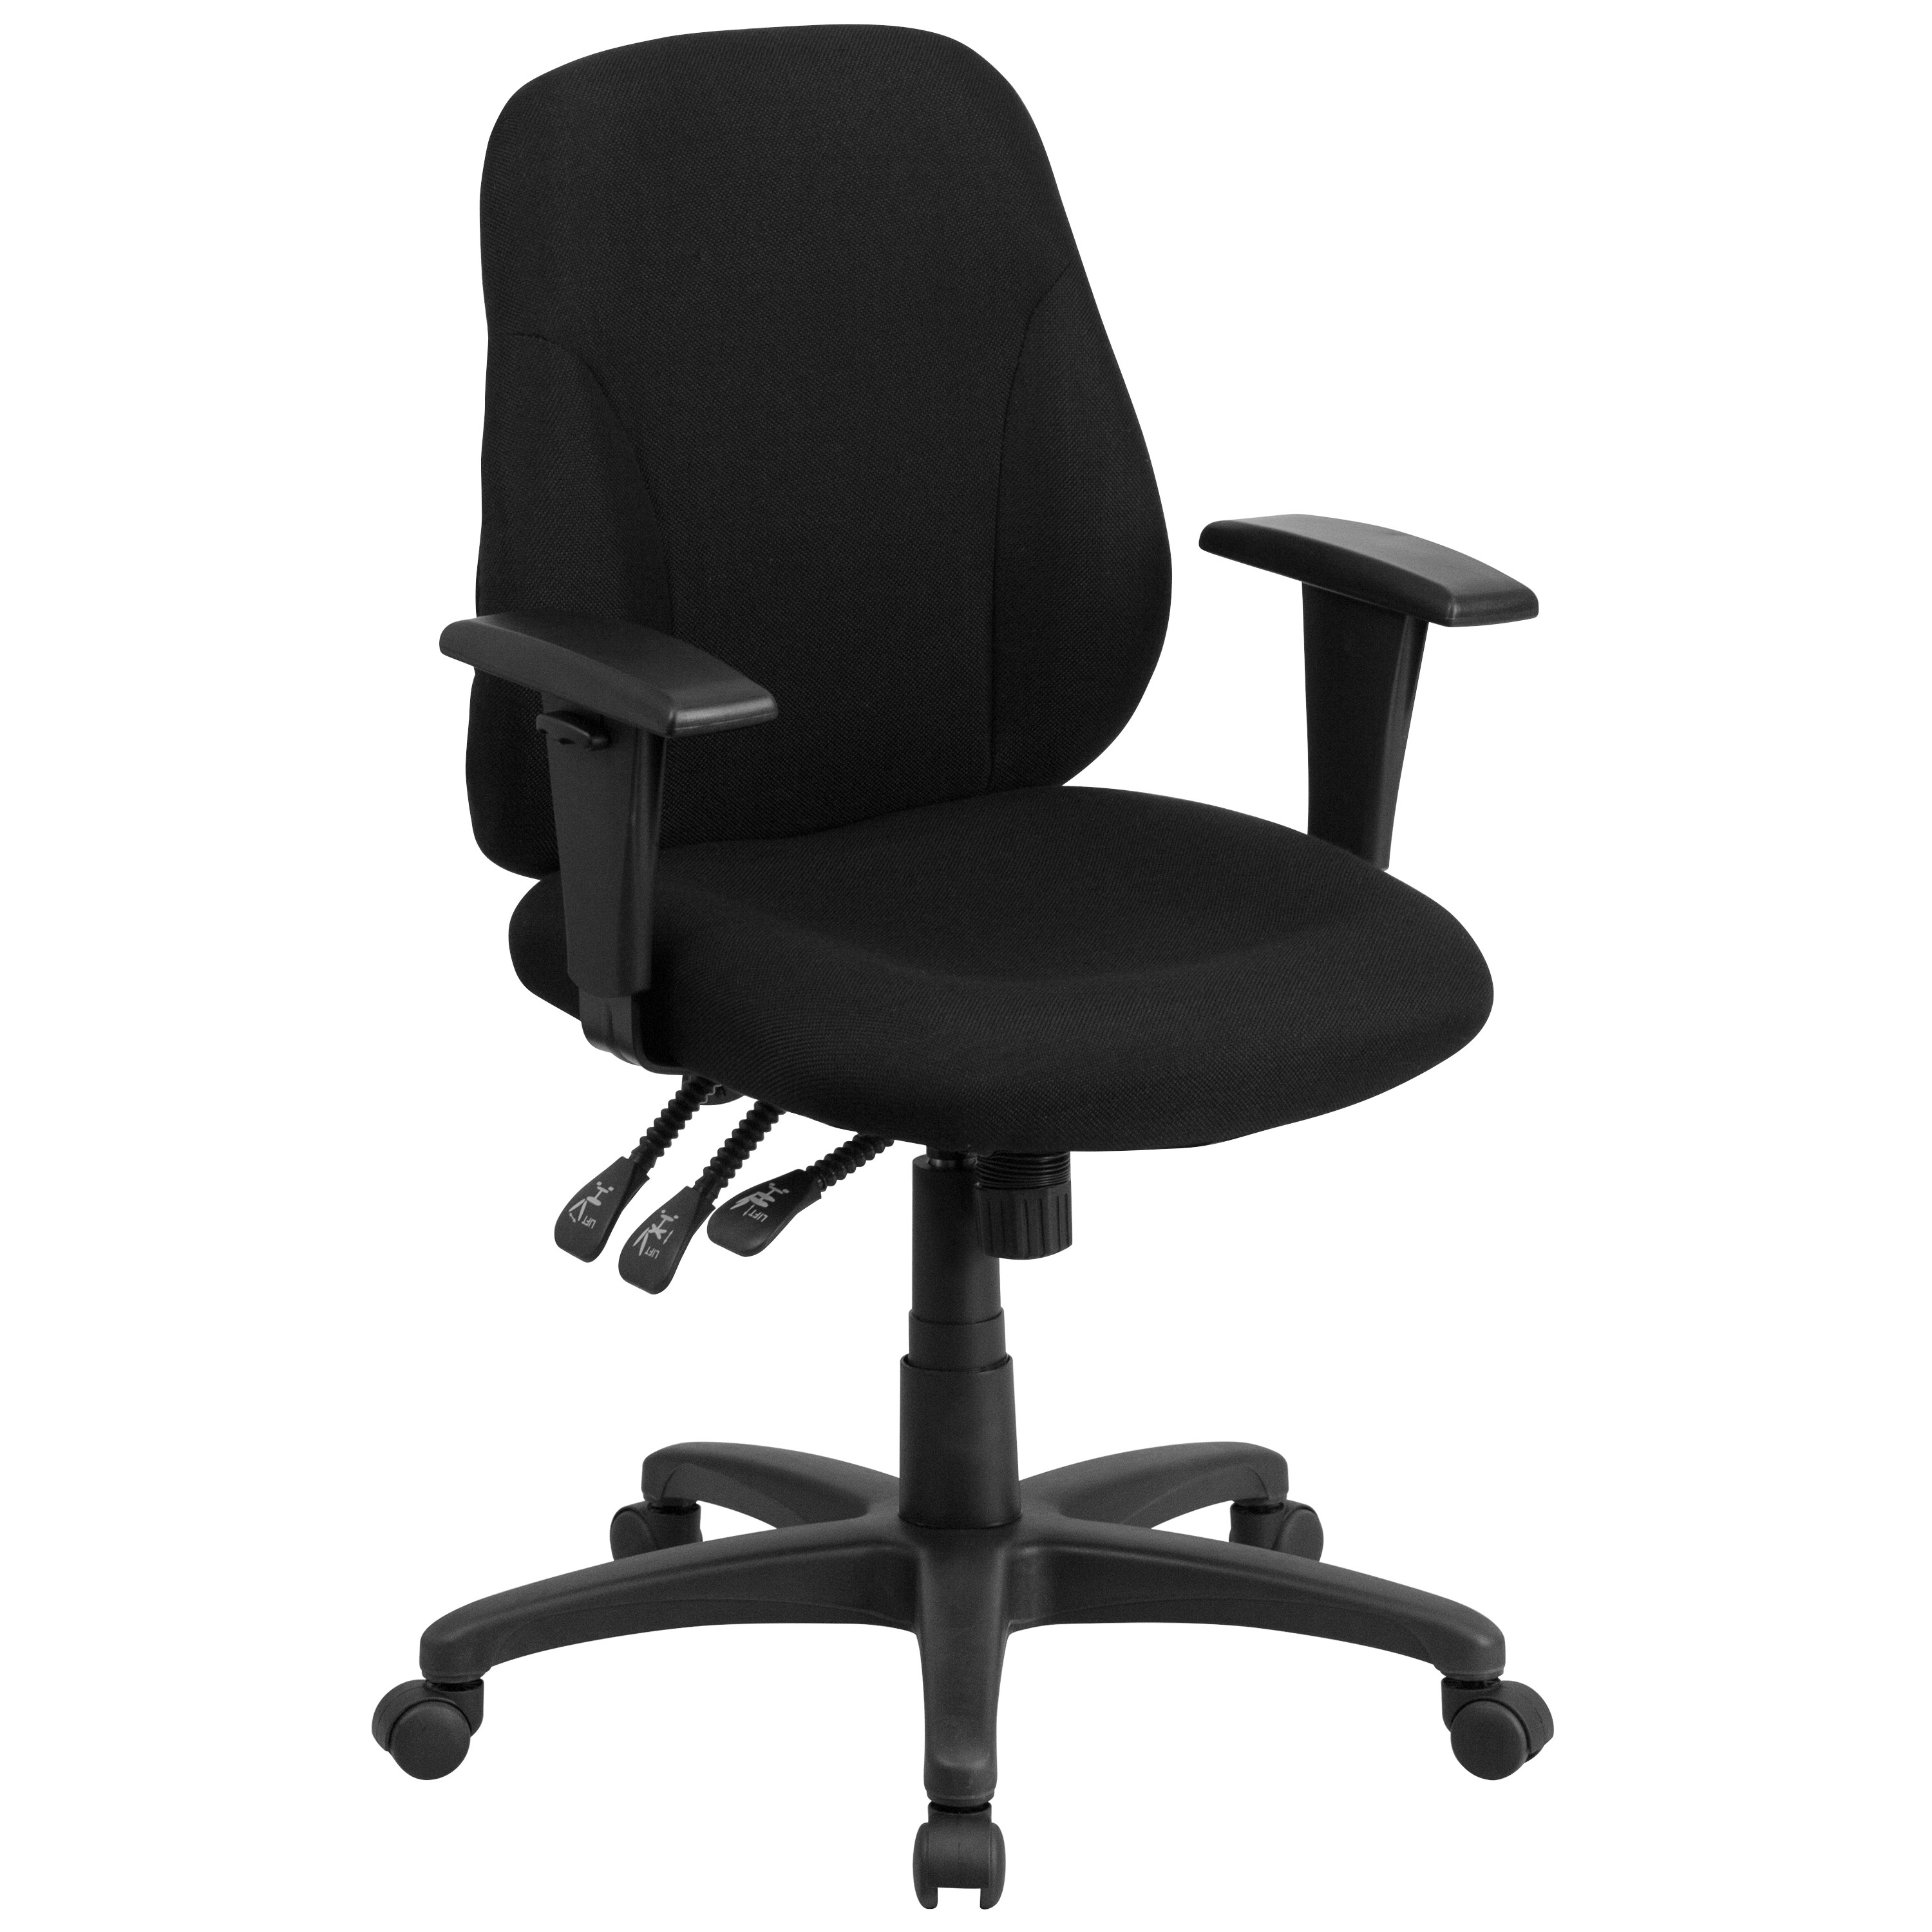 Height Adjustable Chair Mid Back Black Fabric Multi Functional Ergonomic Chair With Height